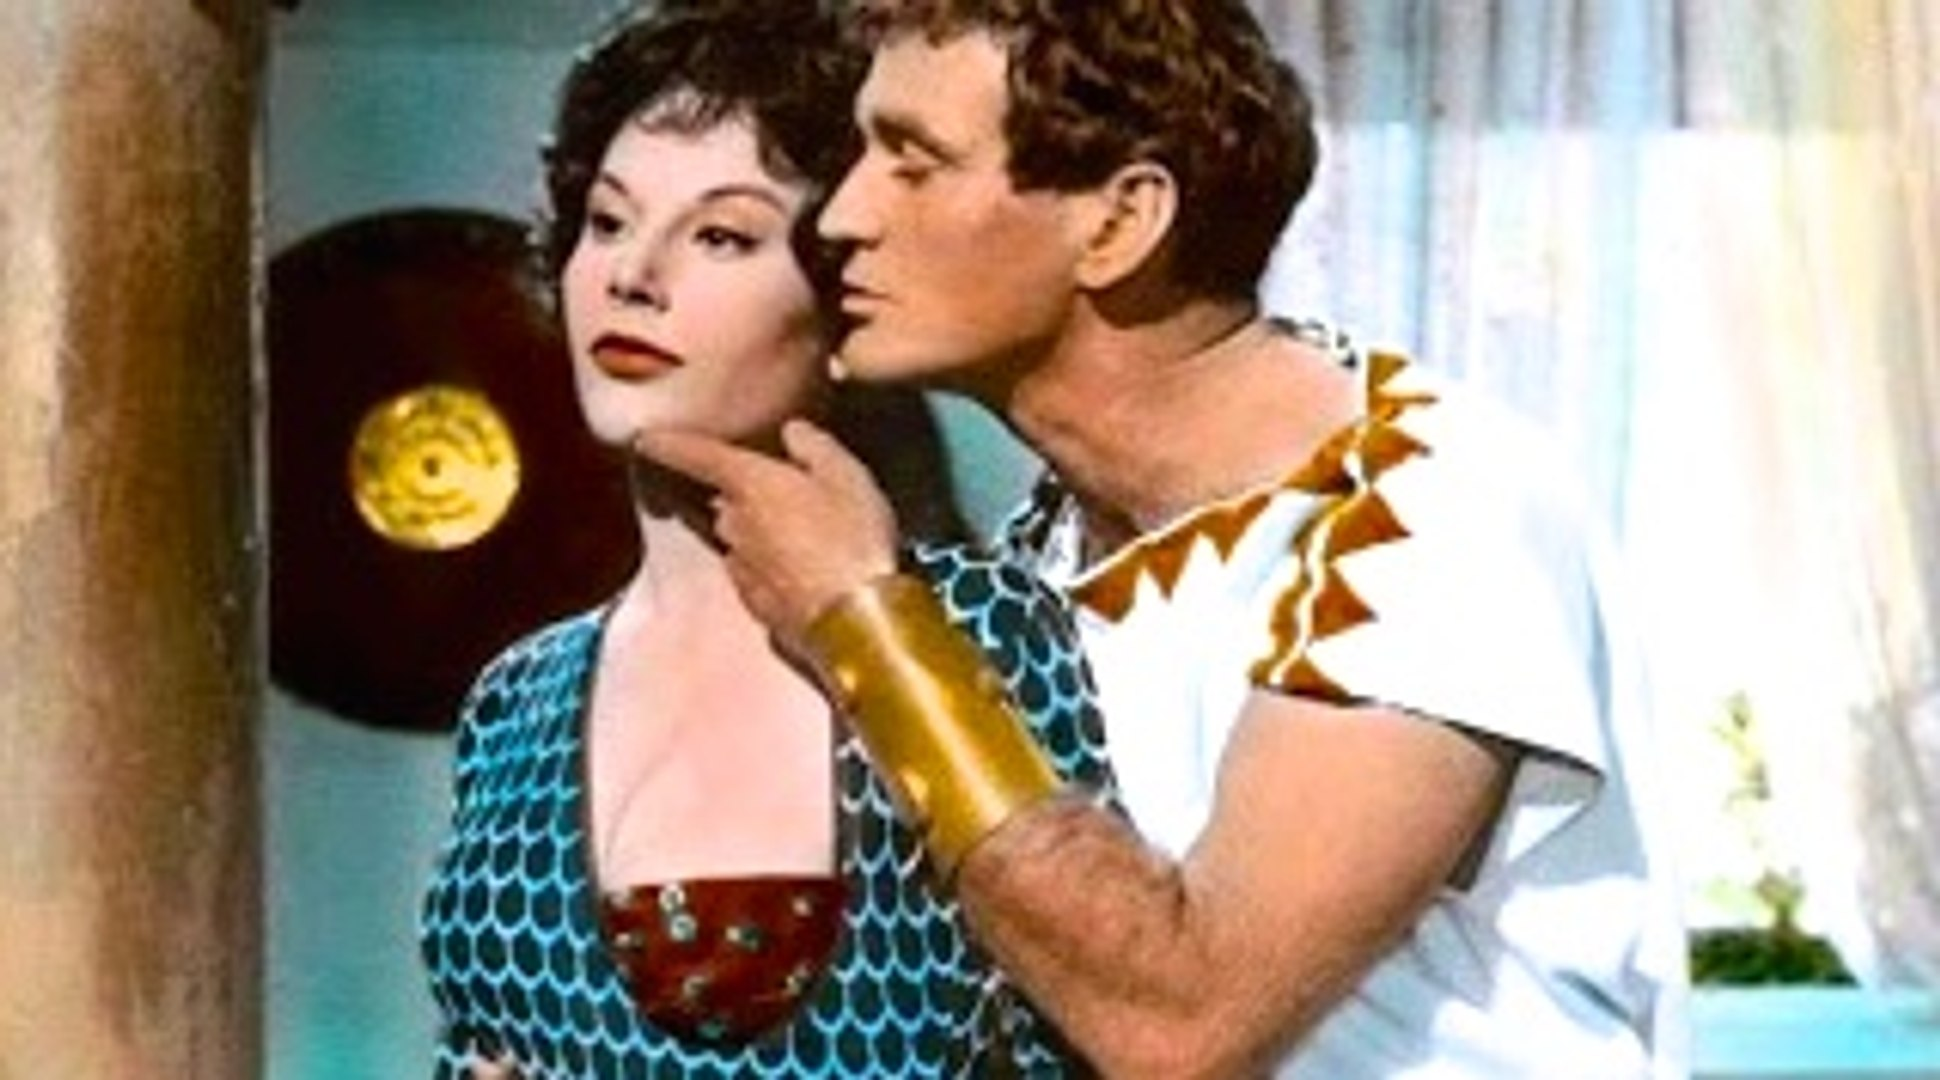 Amazon Queen Bleu colossus and the amazon queen (1960) rod taylor, ed fury, dorian gray.  sword and sandal